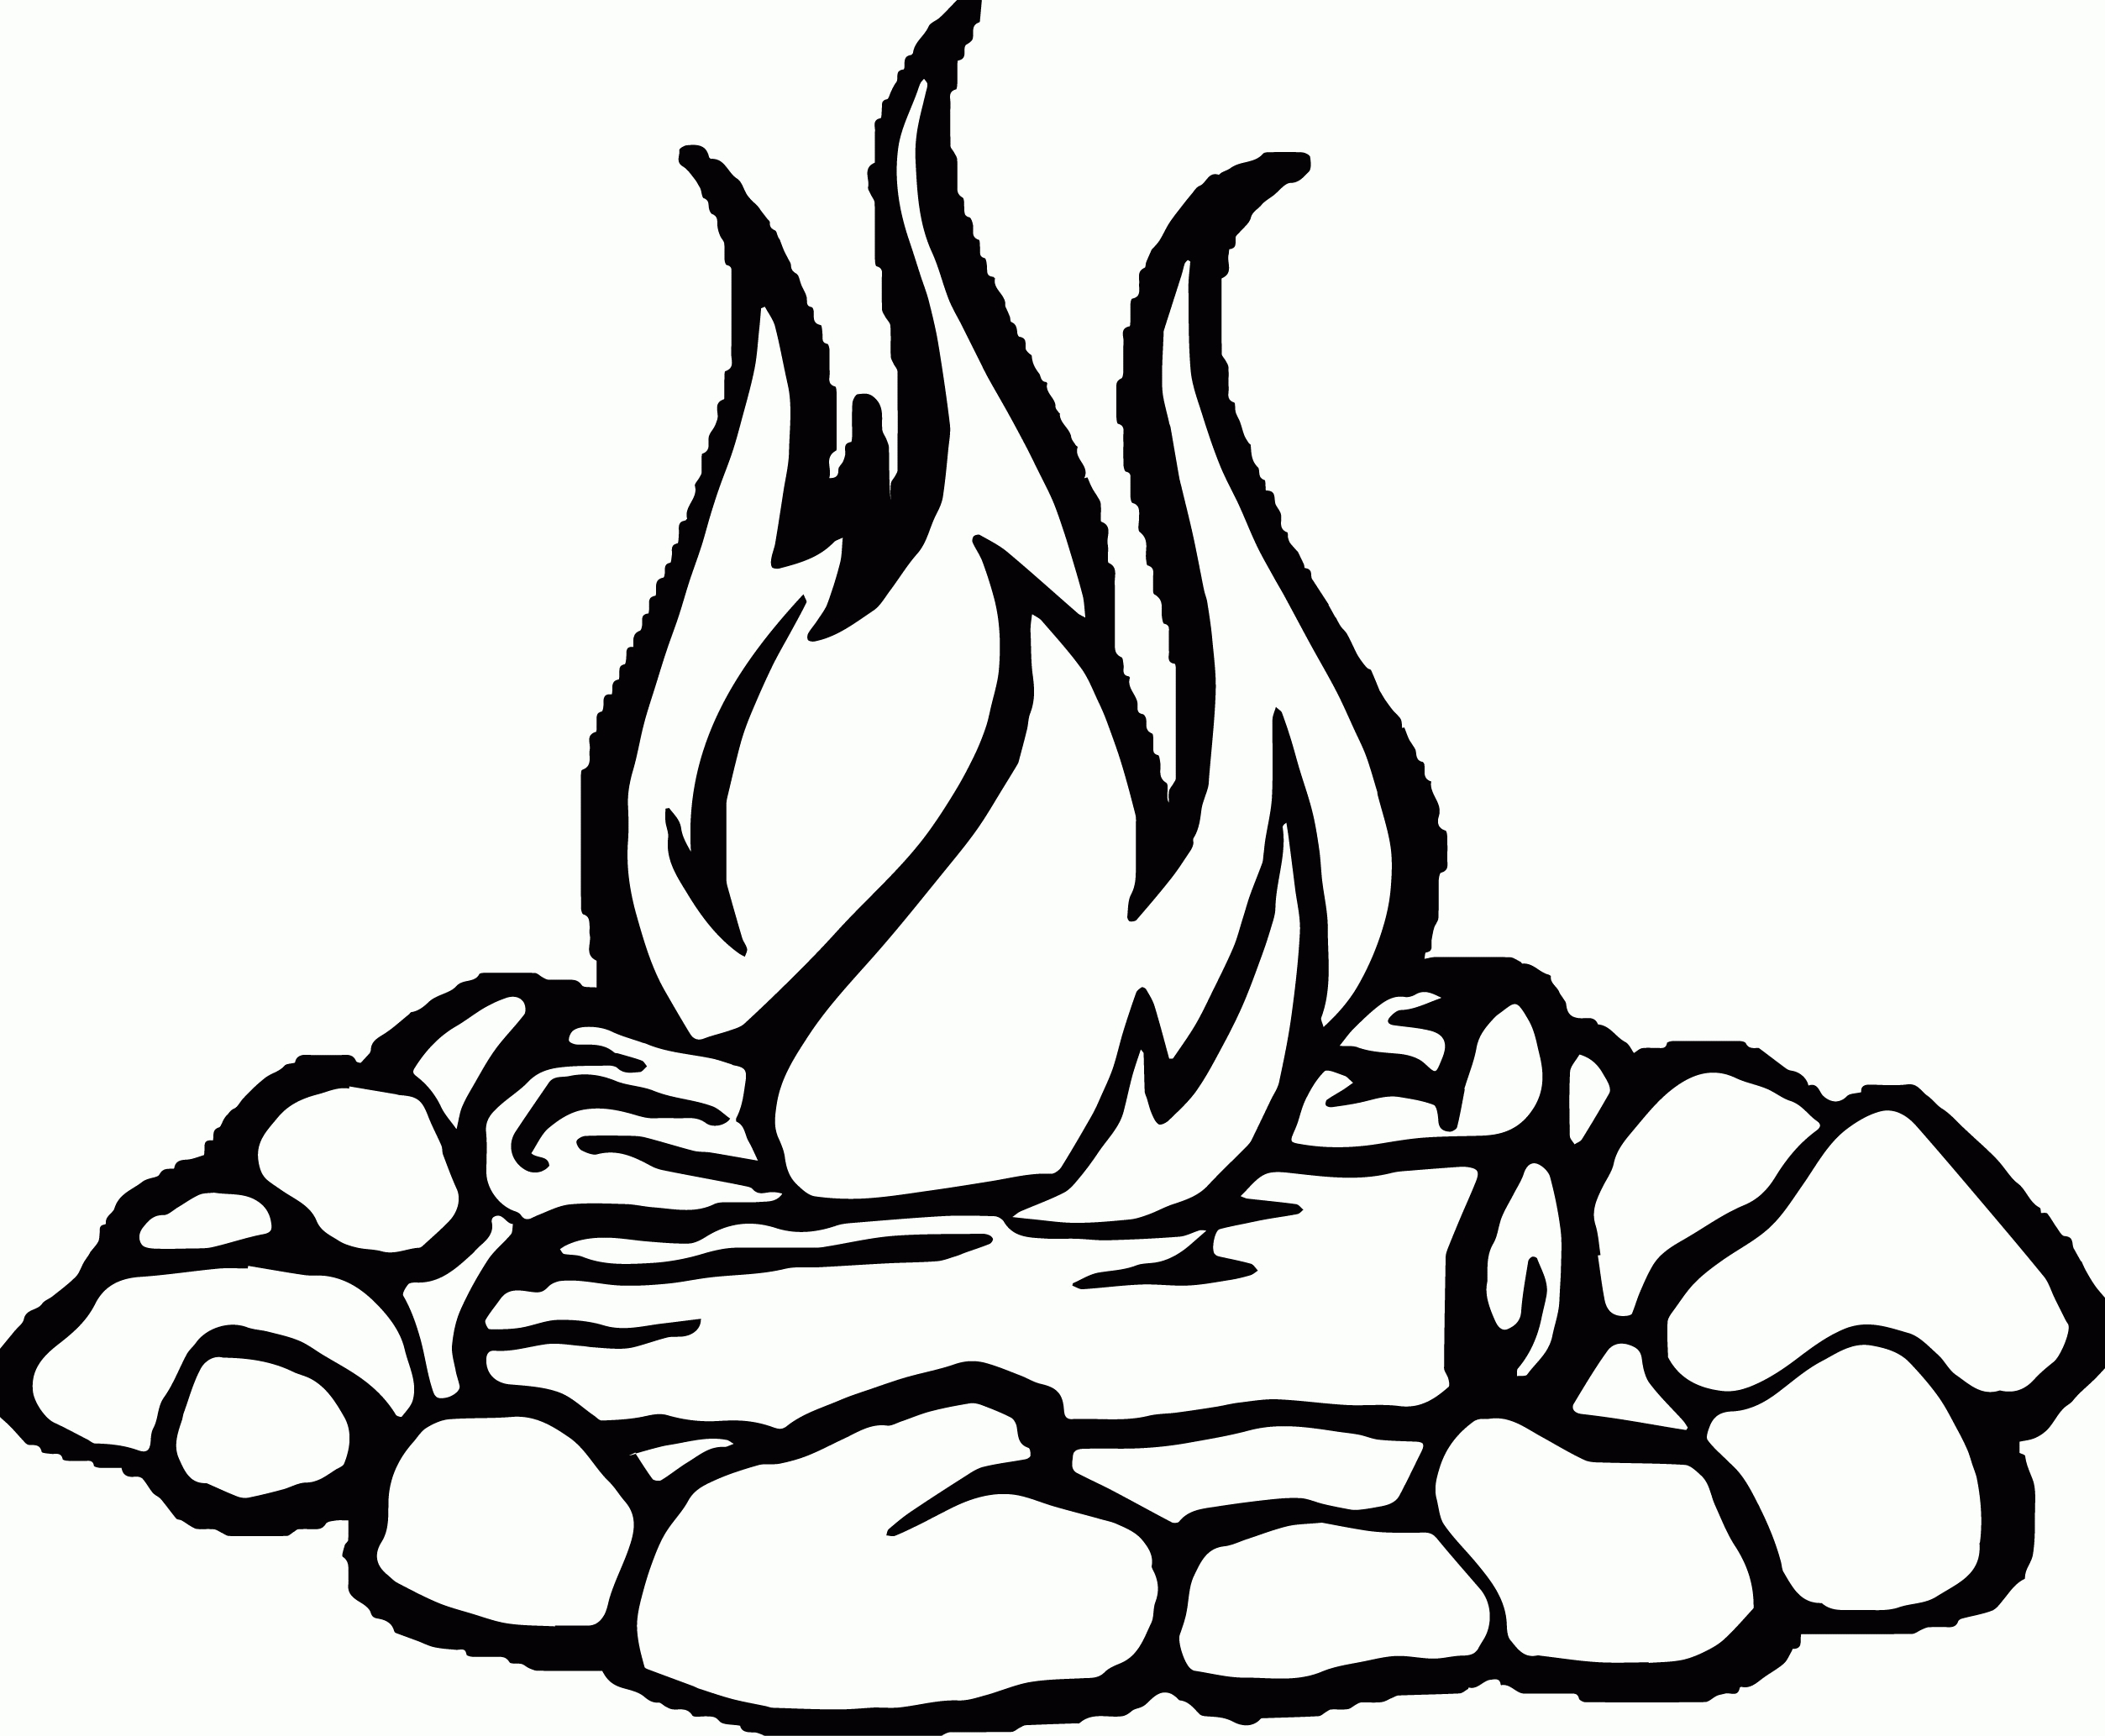 Campfire clipart black and white clip art download Campfire clipart black and white Beautiful Campfire black and white ... clip art download